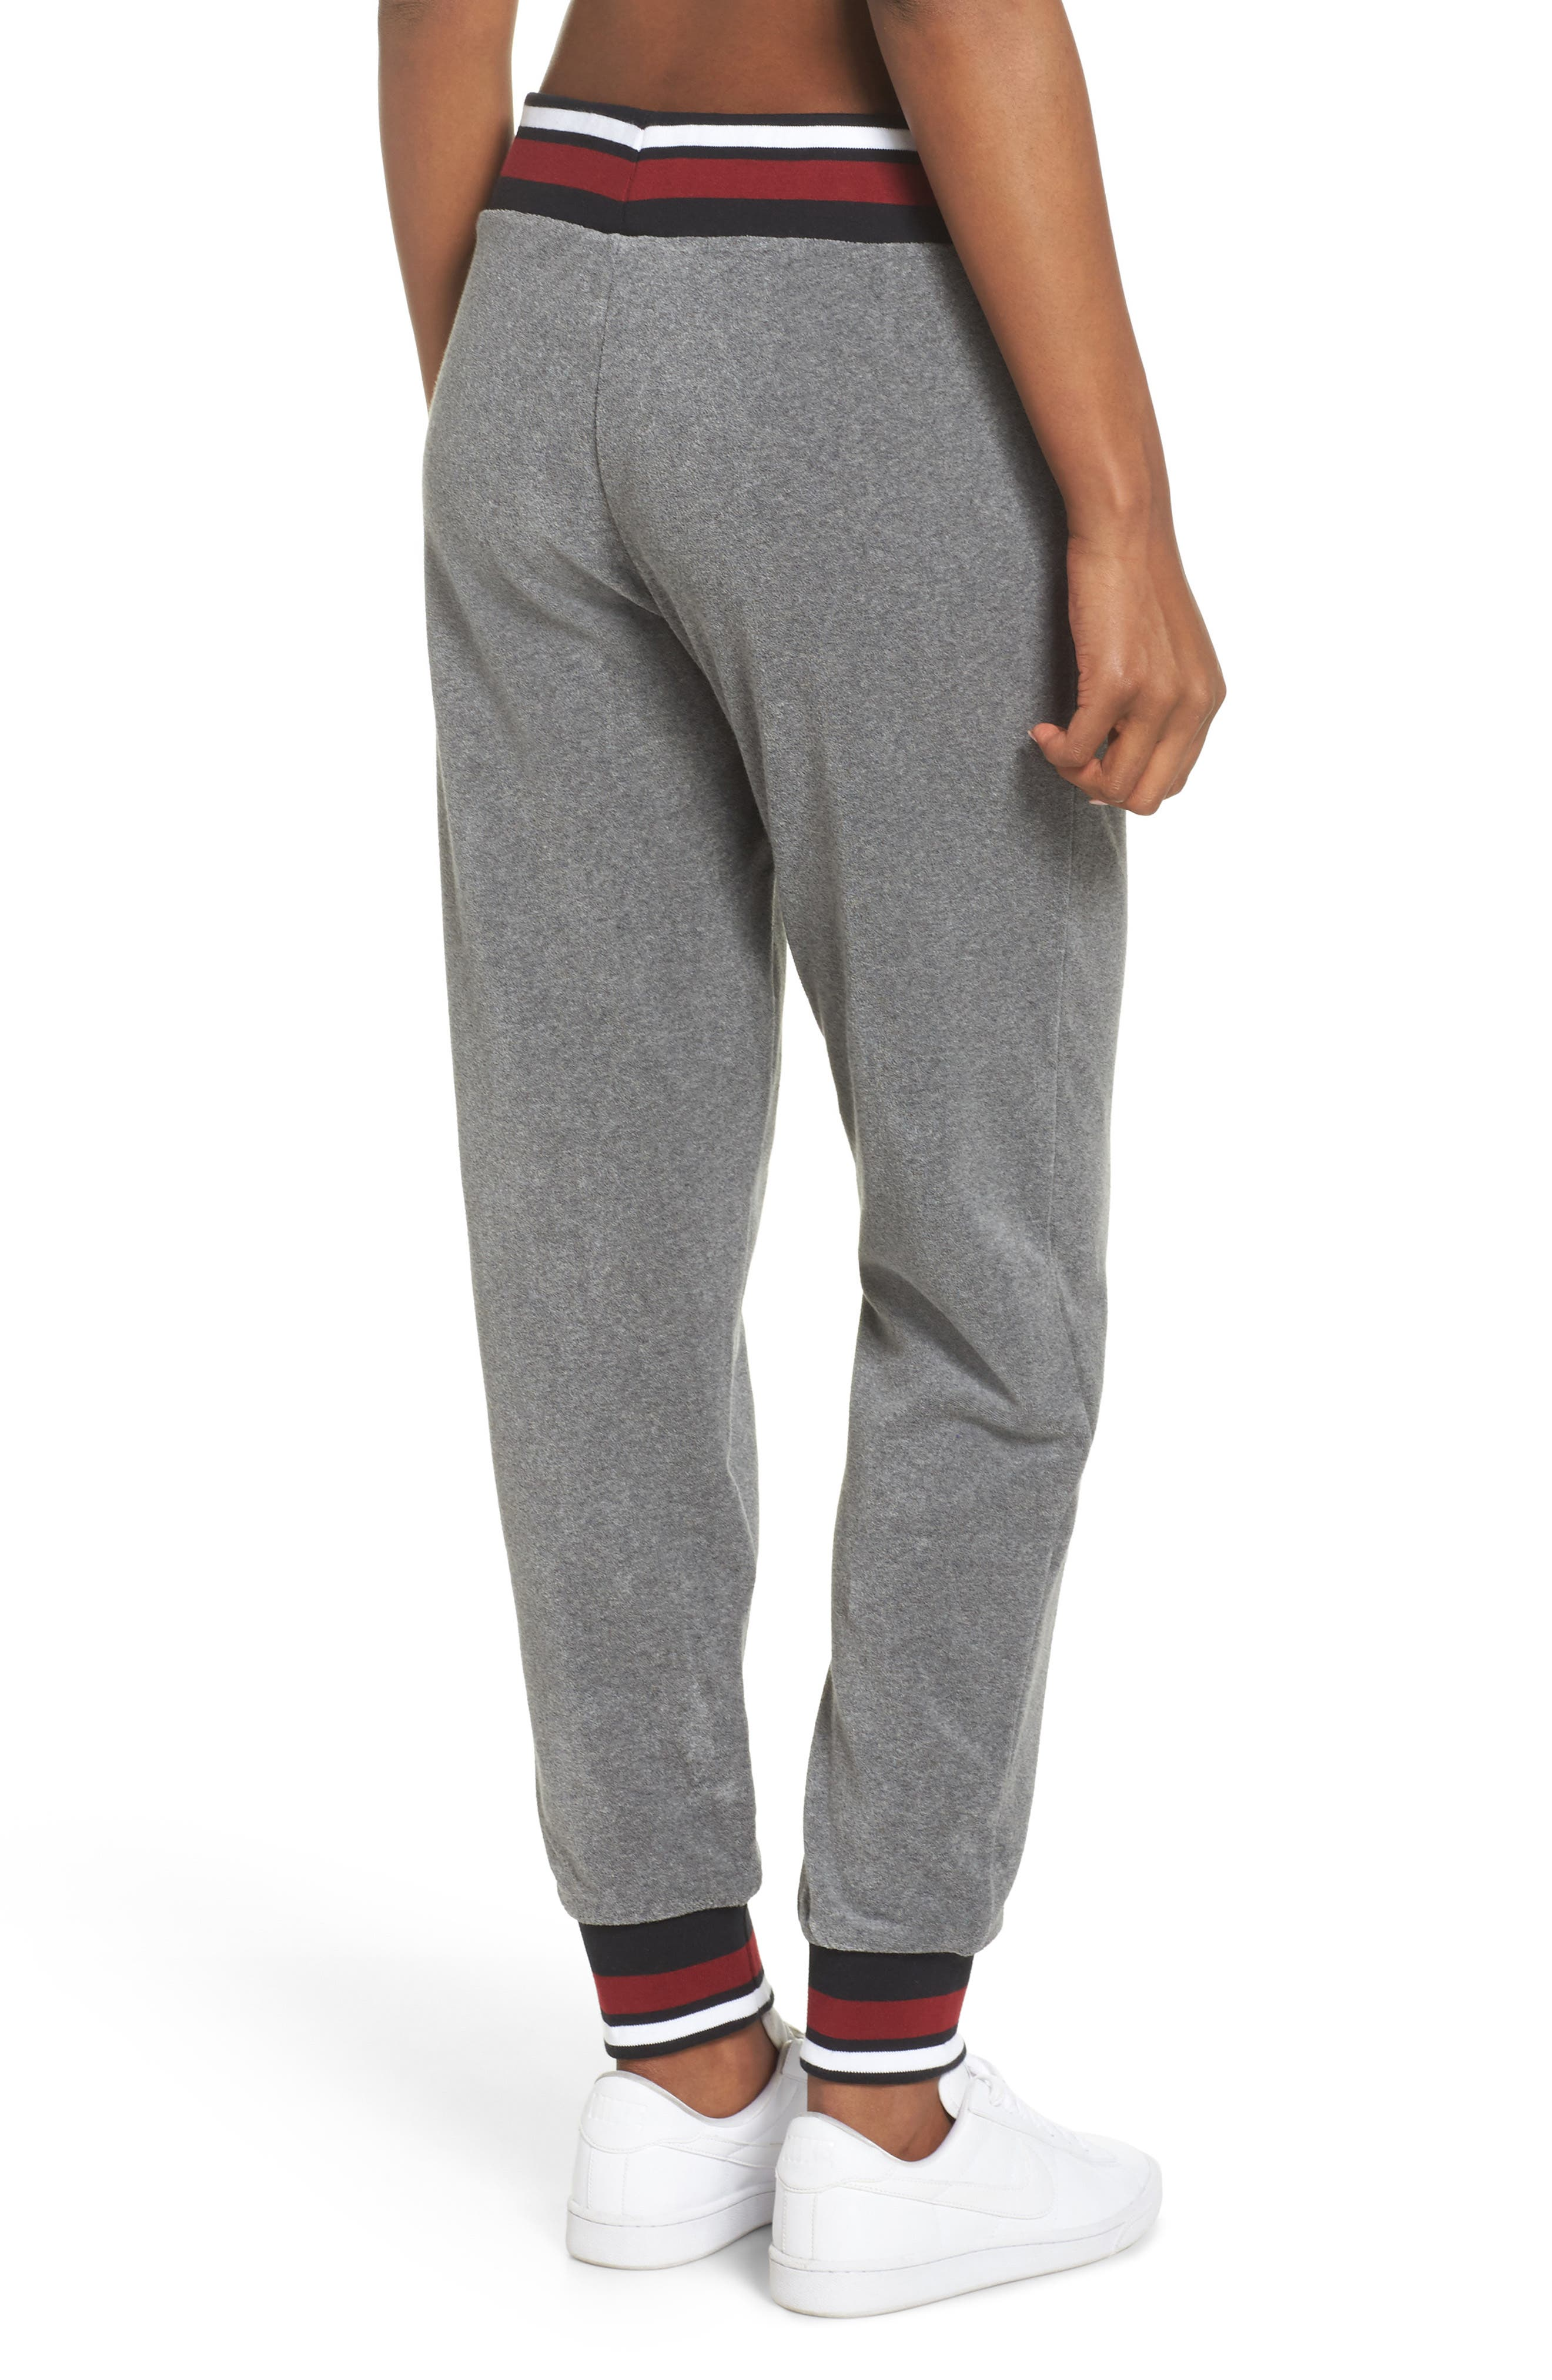 Sportswear French Terry Pants,                             Alternate thumbnail 2, color,                             Carbon Heather/ Team Red